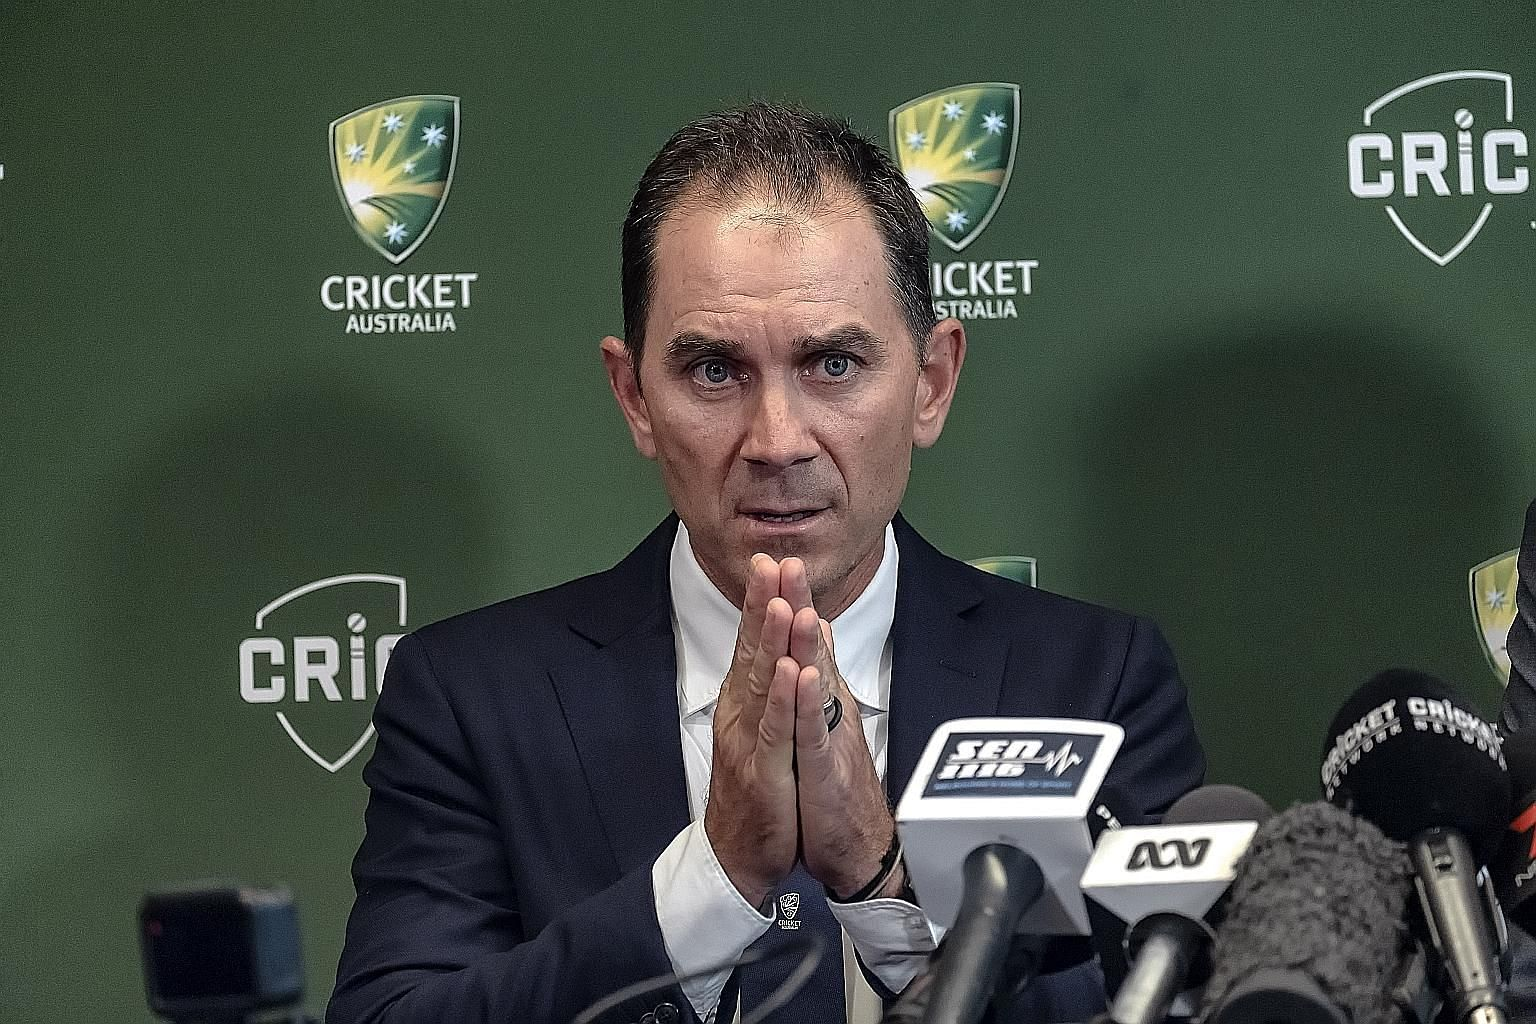 Incoming coach Justin Langer has vowed to regain respect for Australian cricket after the recent scandal.